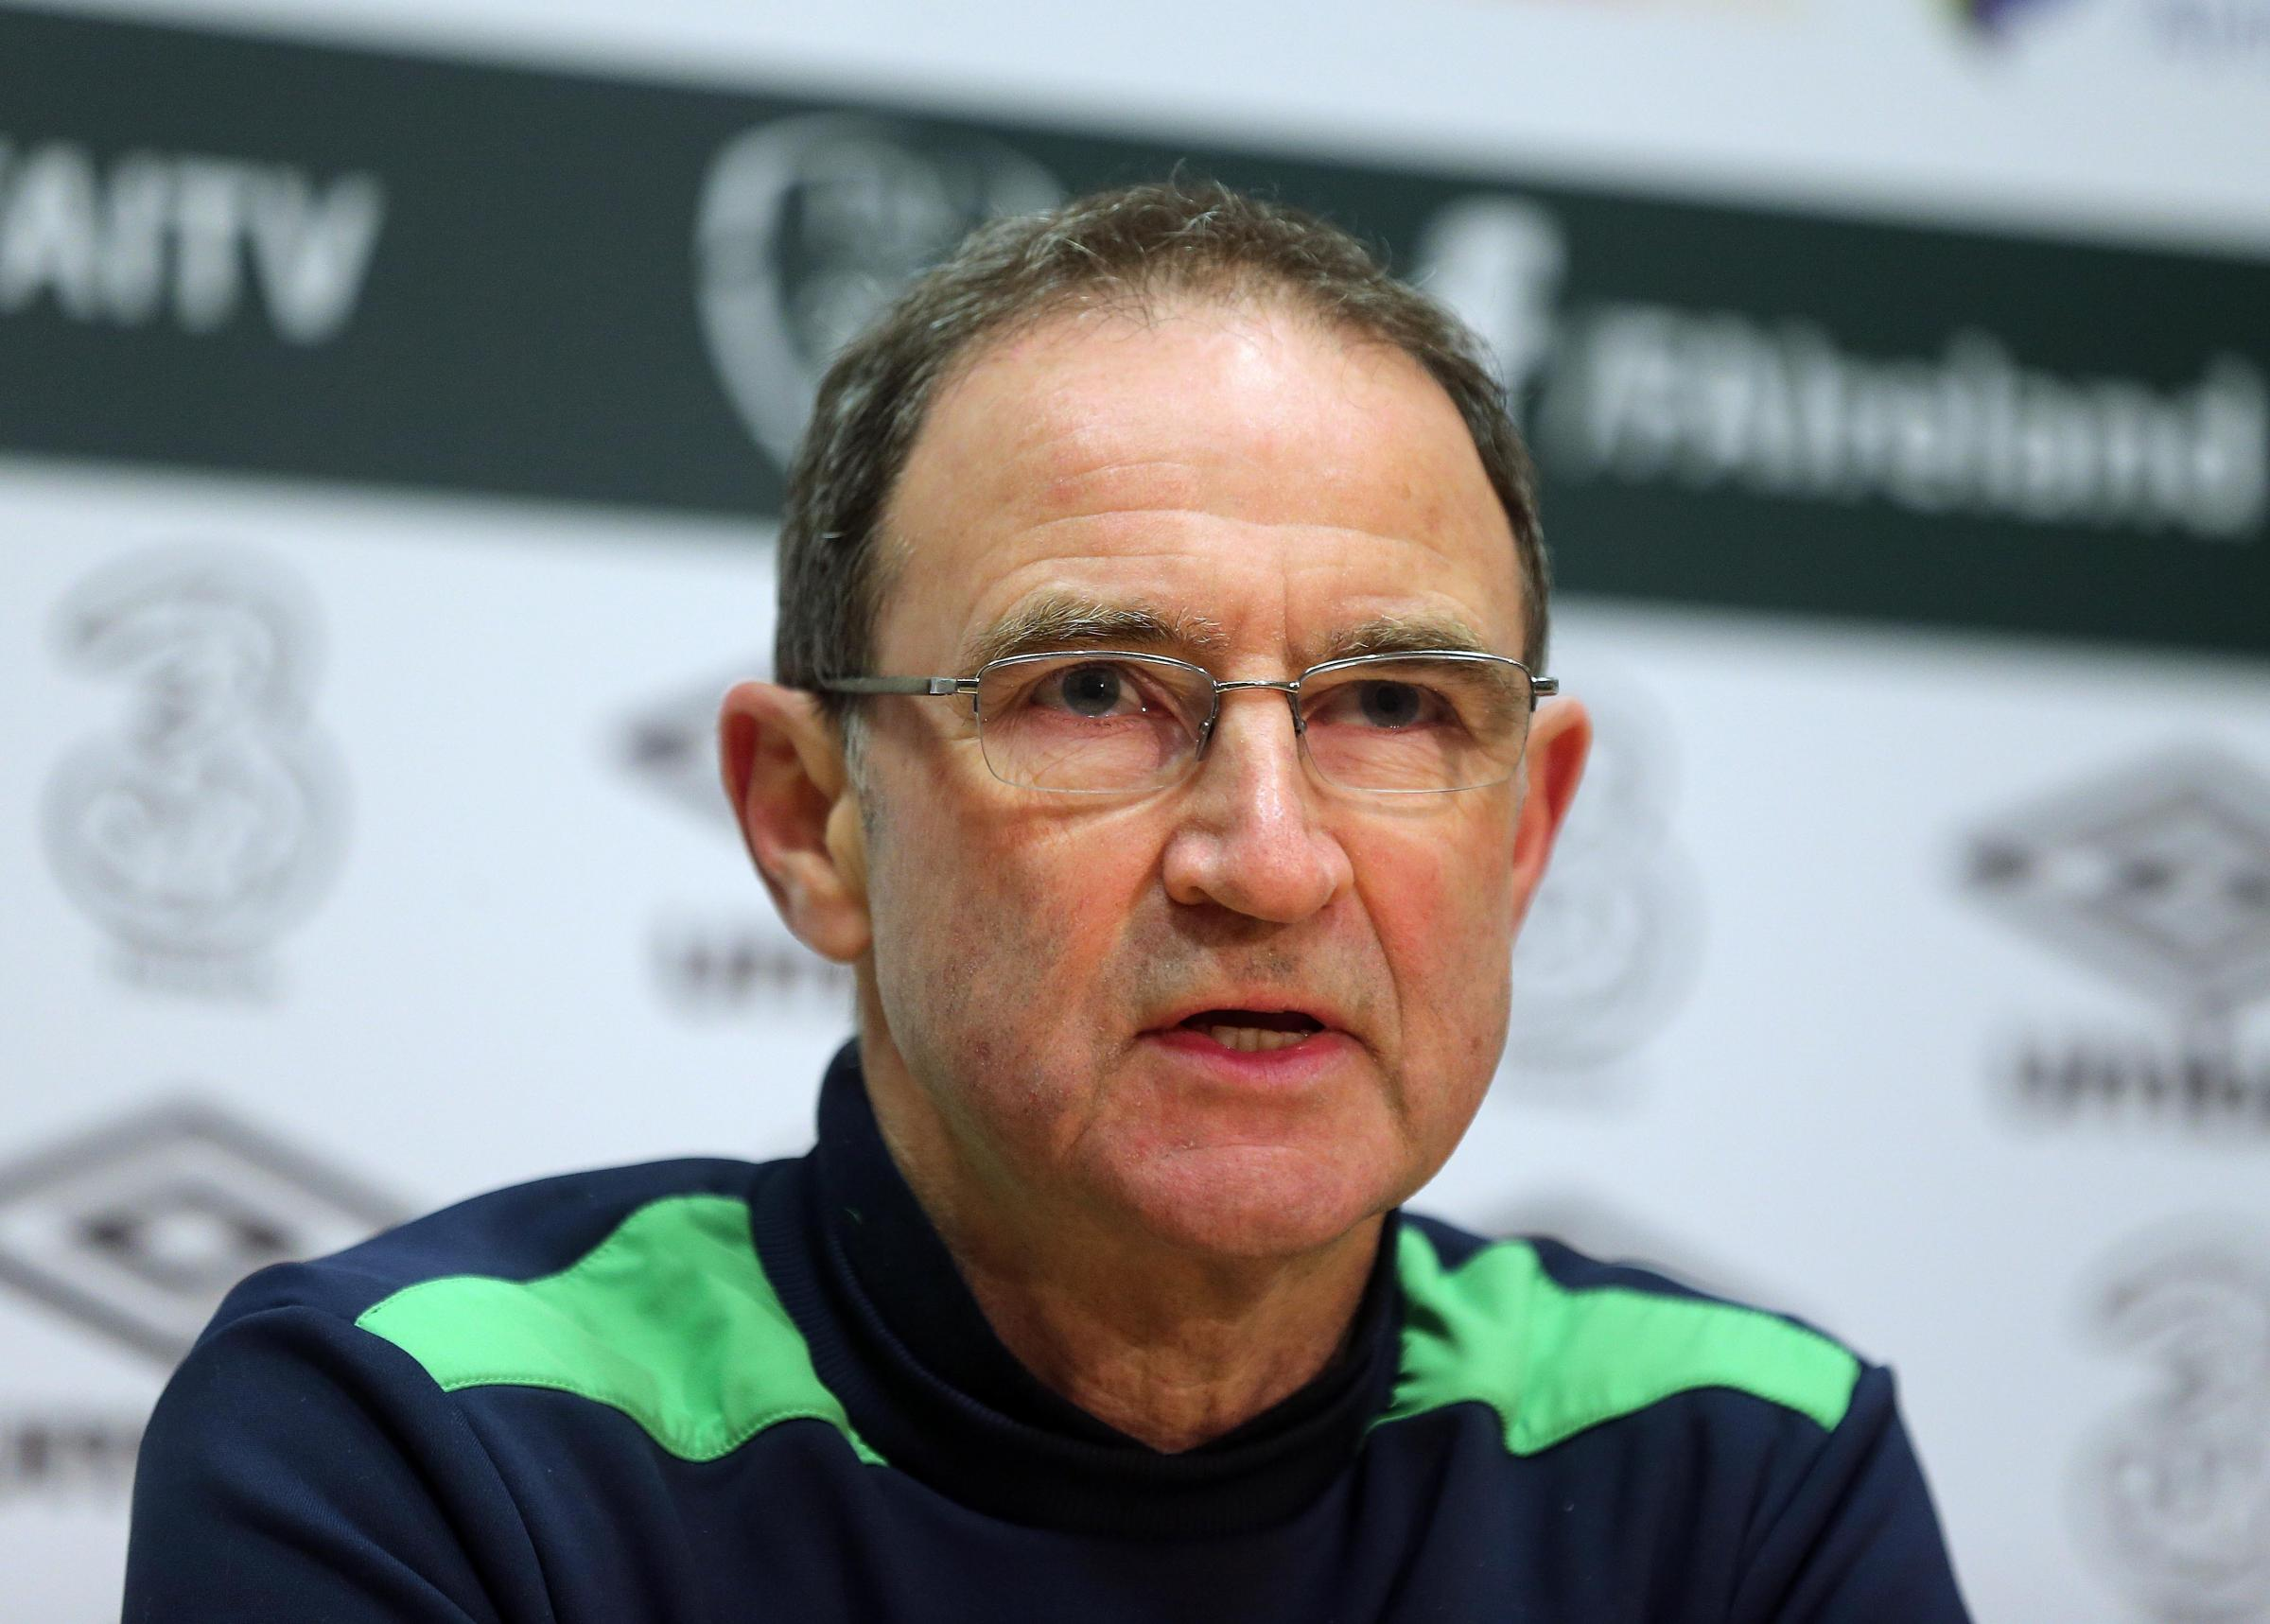 TIGHT GROUP: Ireland boss Martin O'Neill